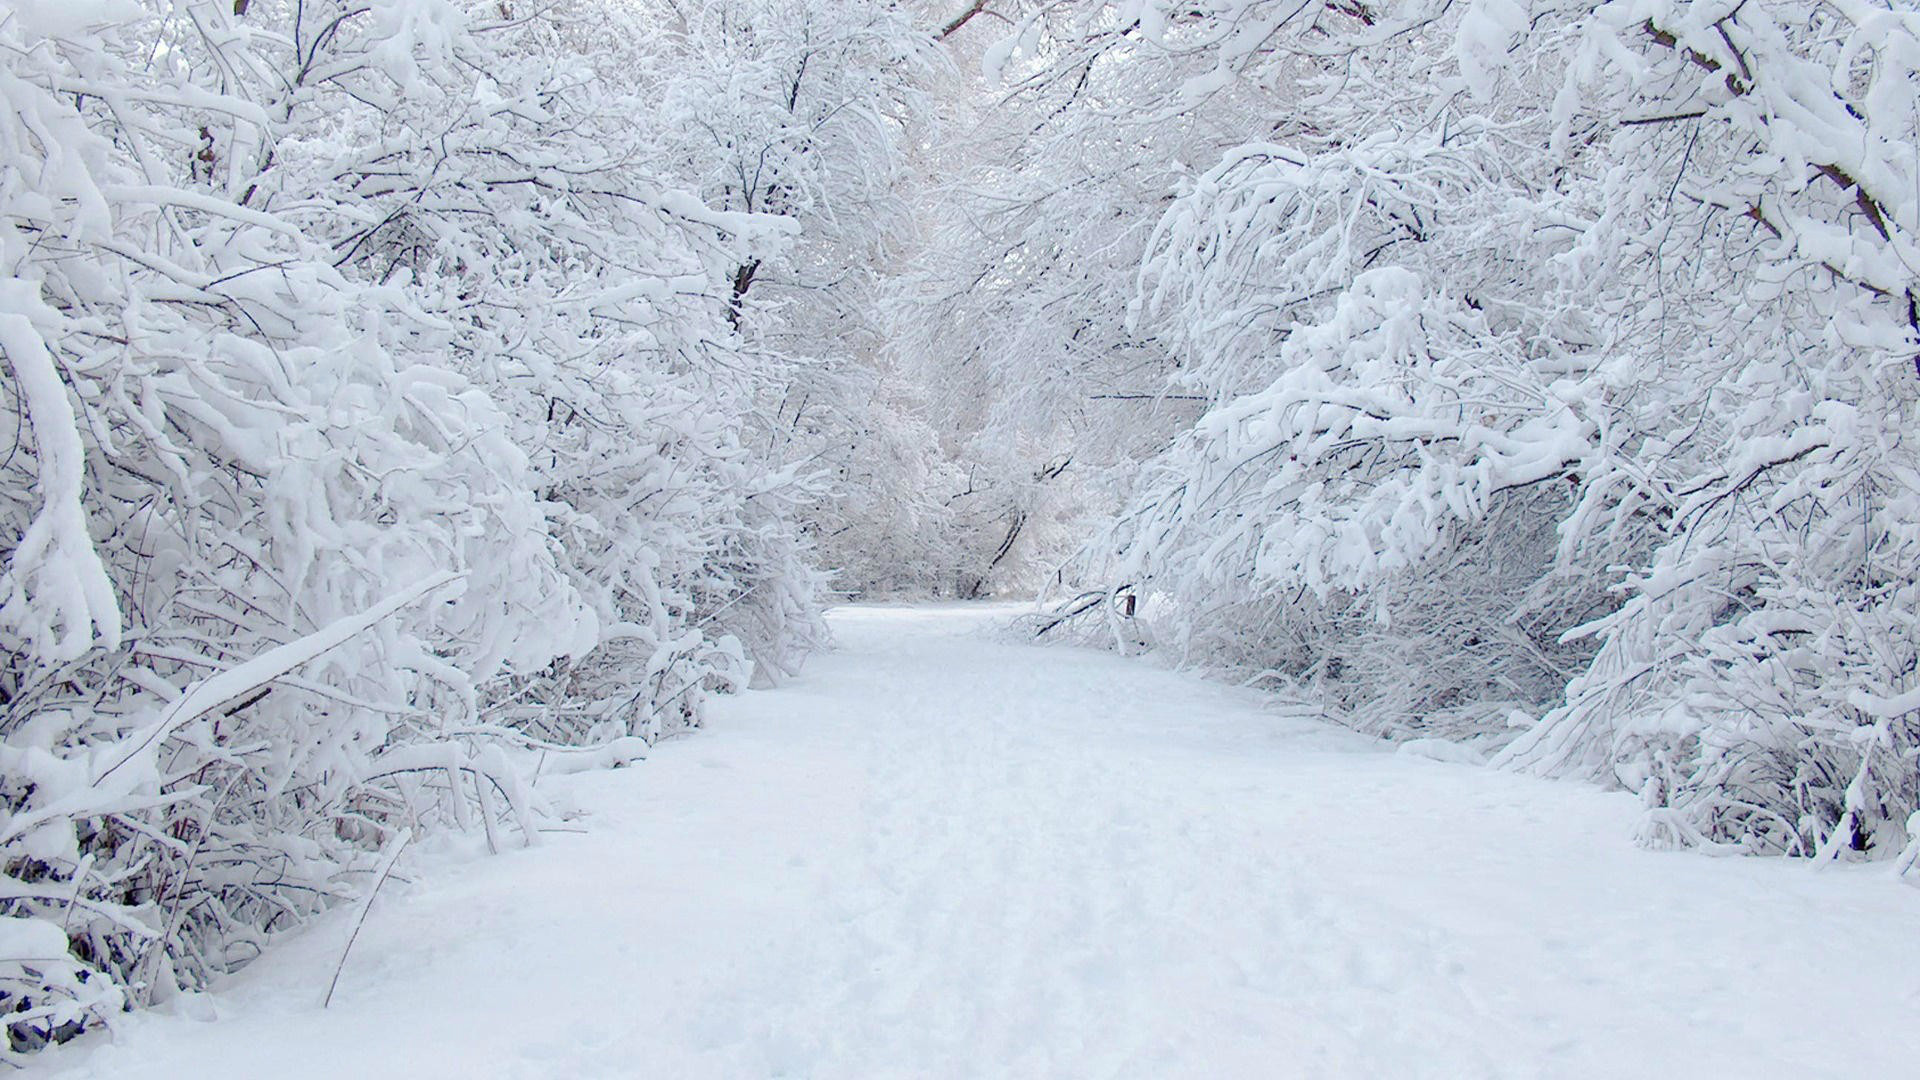 Animated snow scene wallpaper 41 images 2560x1920 winter nature snow scene wallpaper 19808 full hd wallpaper desktop voltagebd Image collections